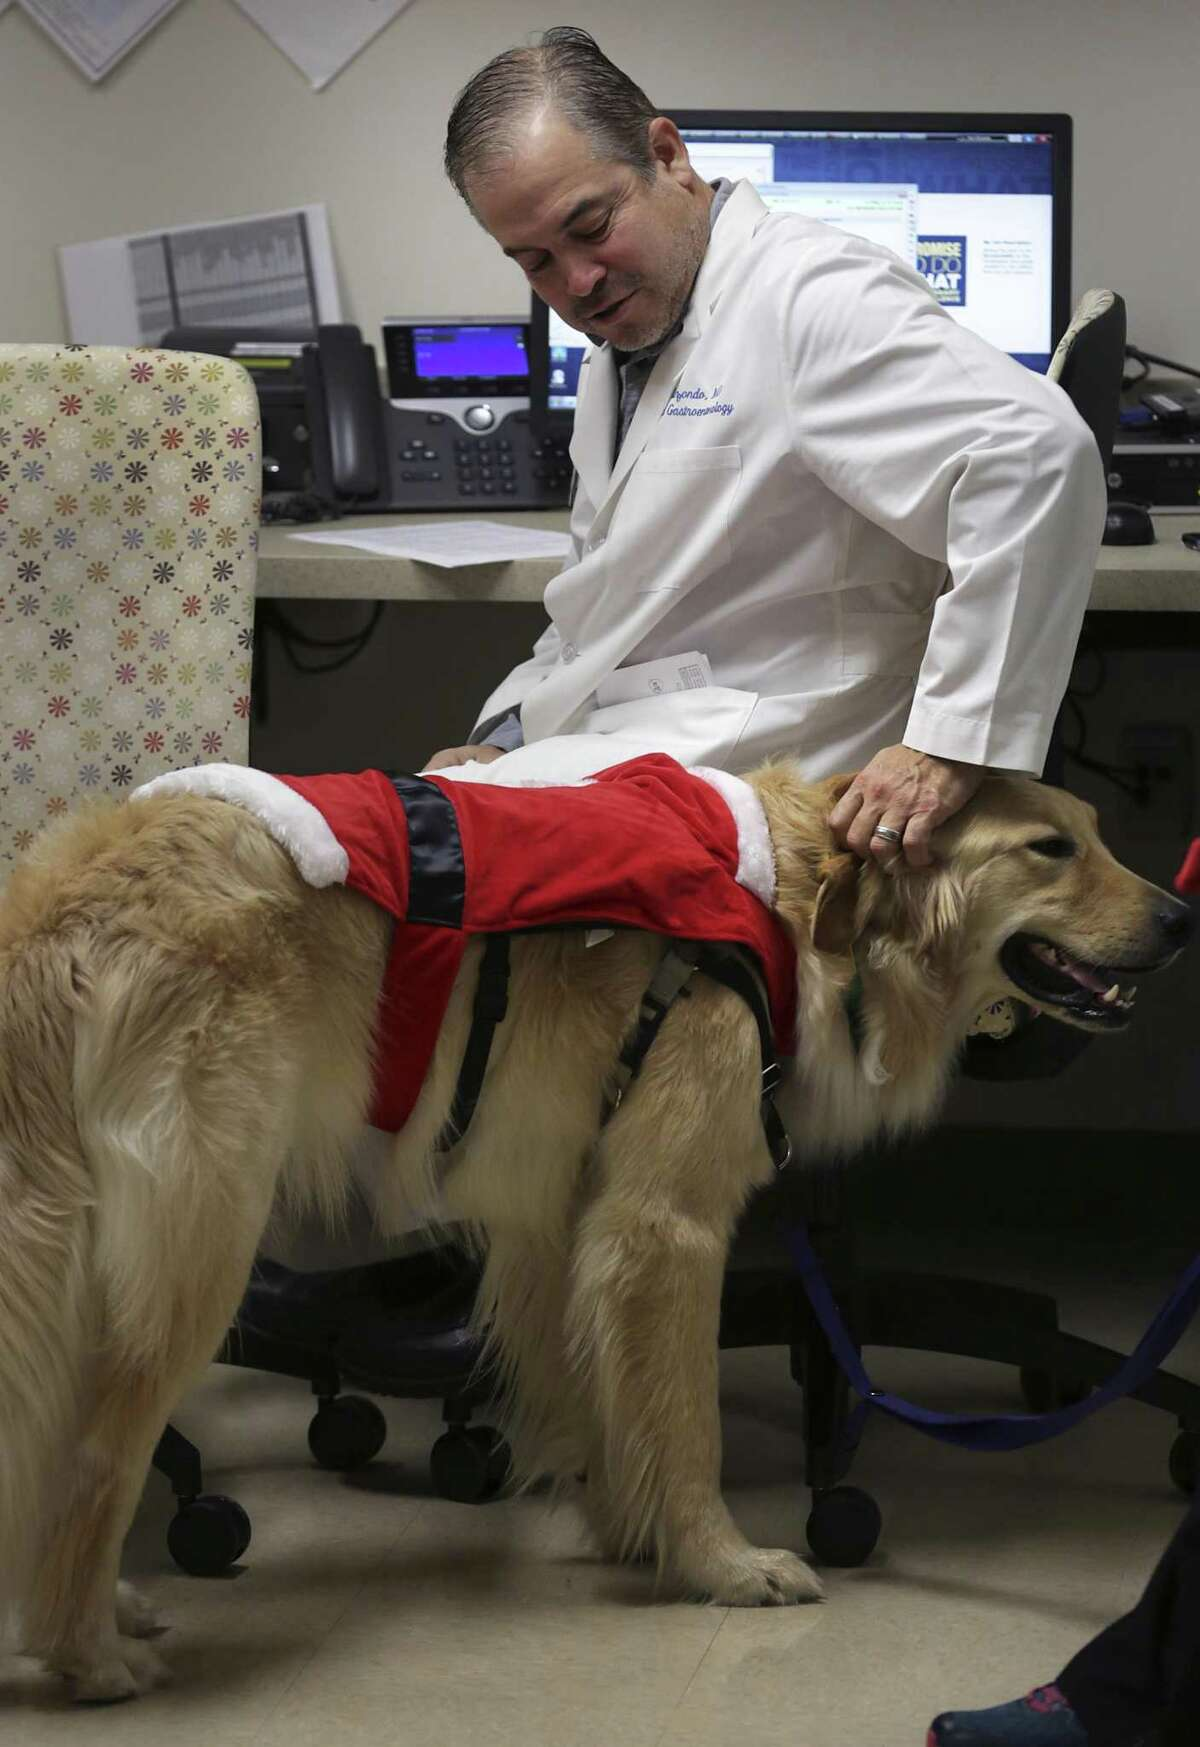 Jaime, a trained facility dog, visits with Dr. Ben Elizondo while he works on medical reports. Methodist Children's Hospital has two dogs to help staff and patients, who are coping with the stress of being in a hospital.